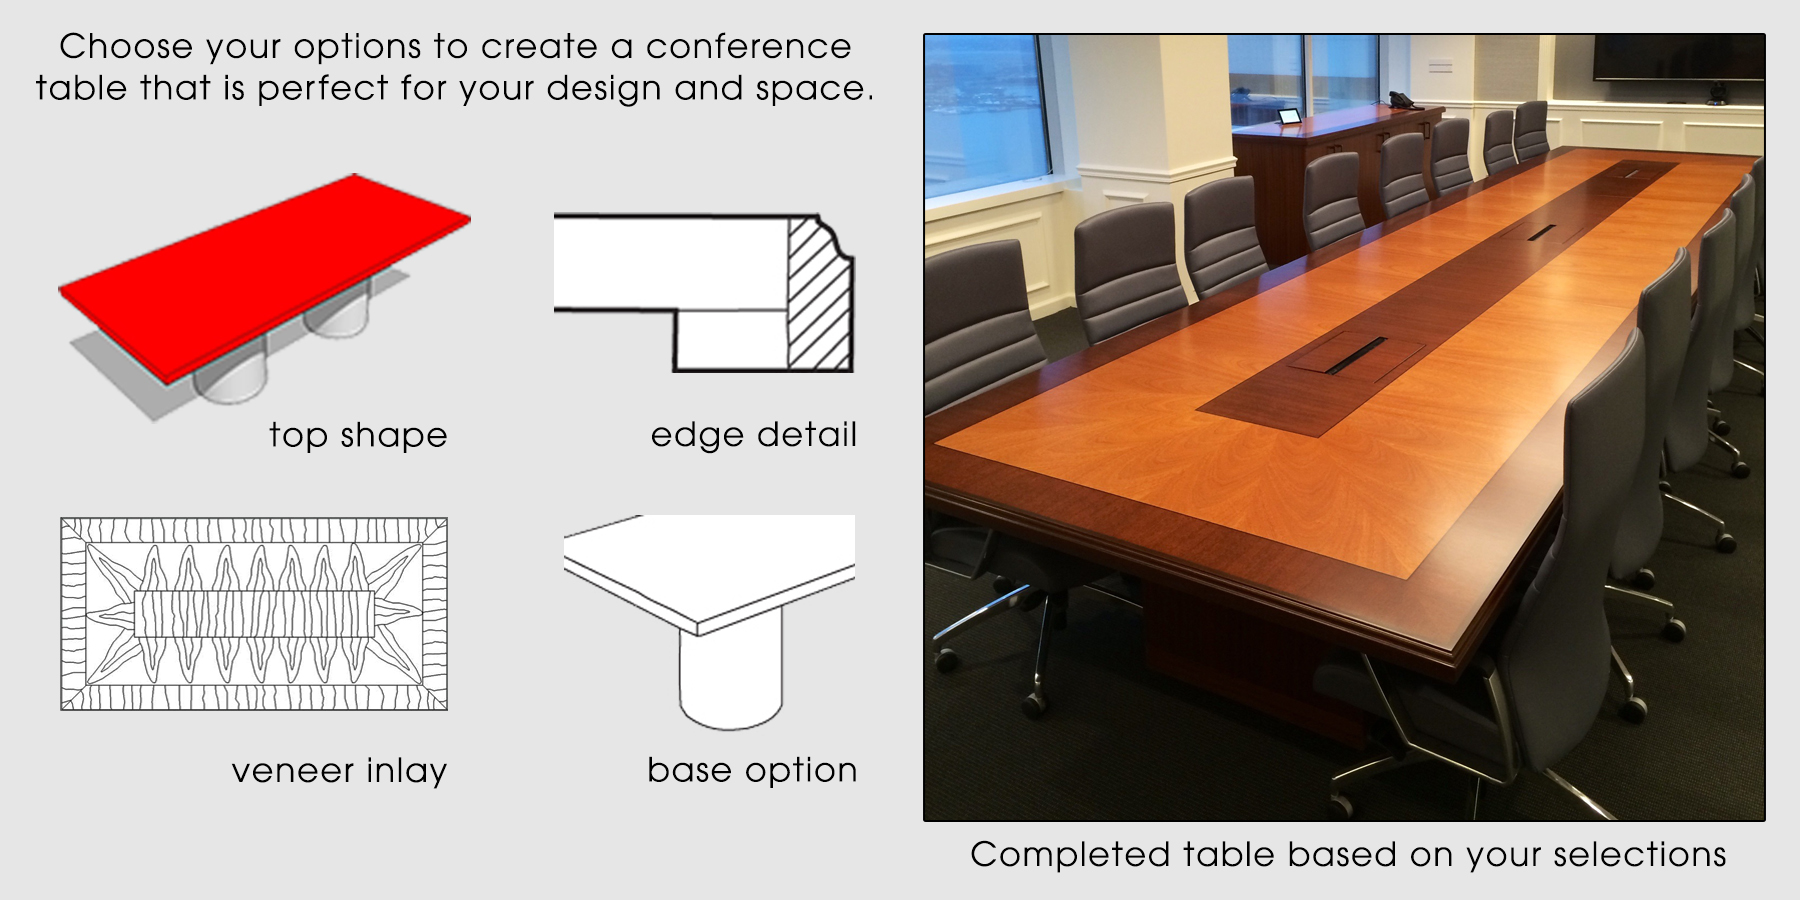 Build Your Own Arnold Contract - Build a conference table